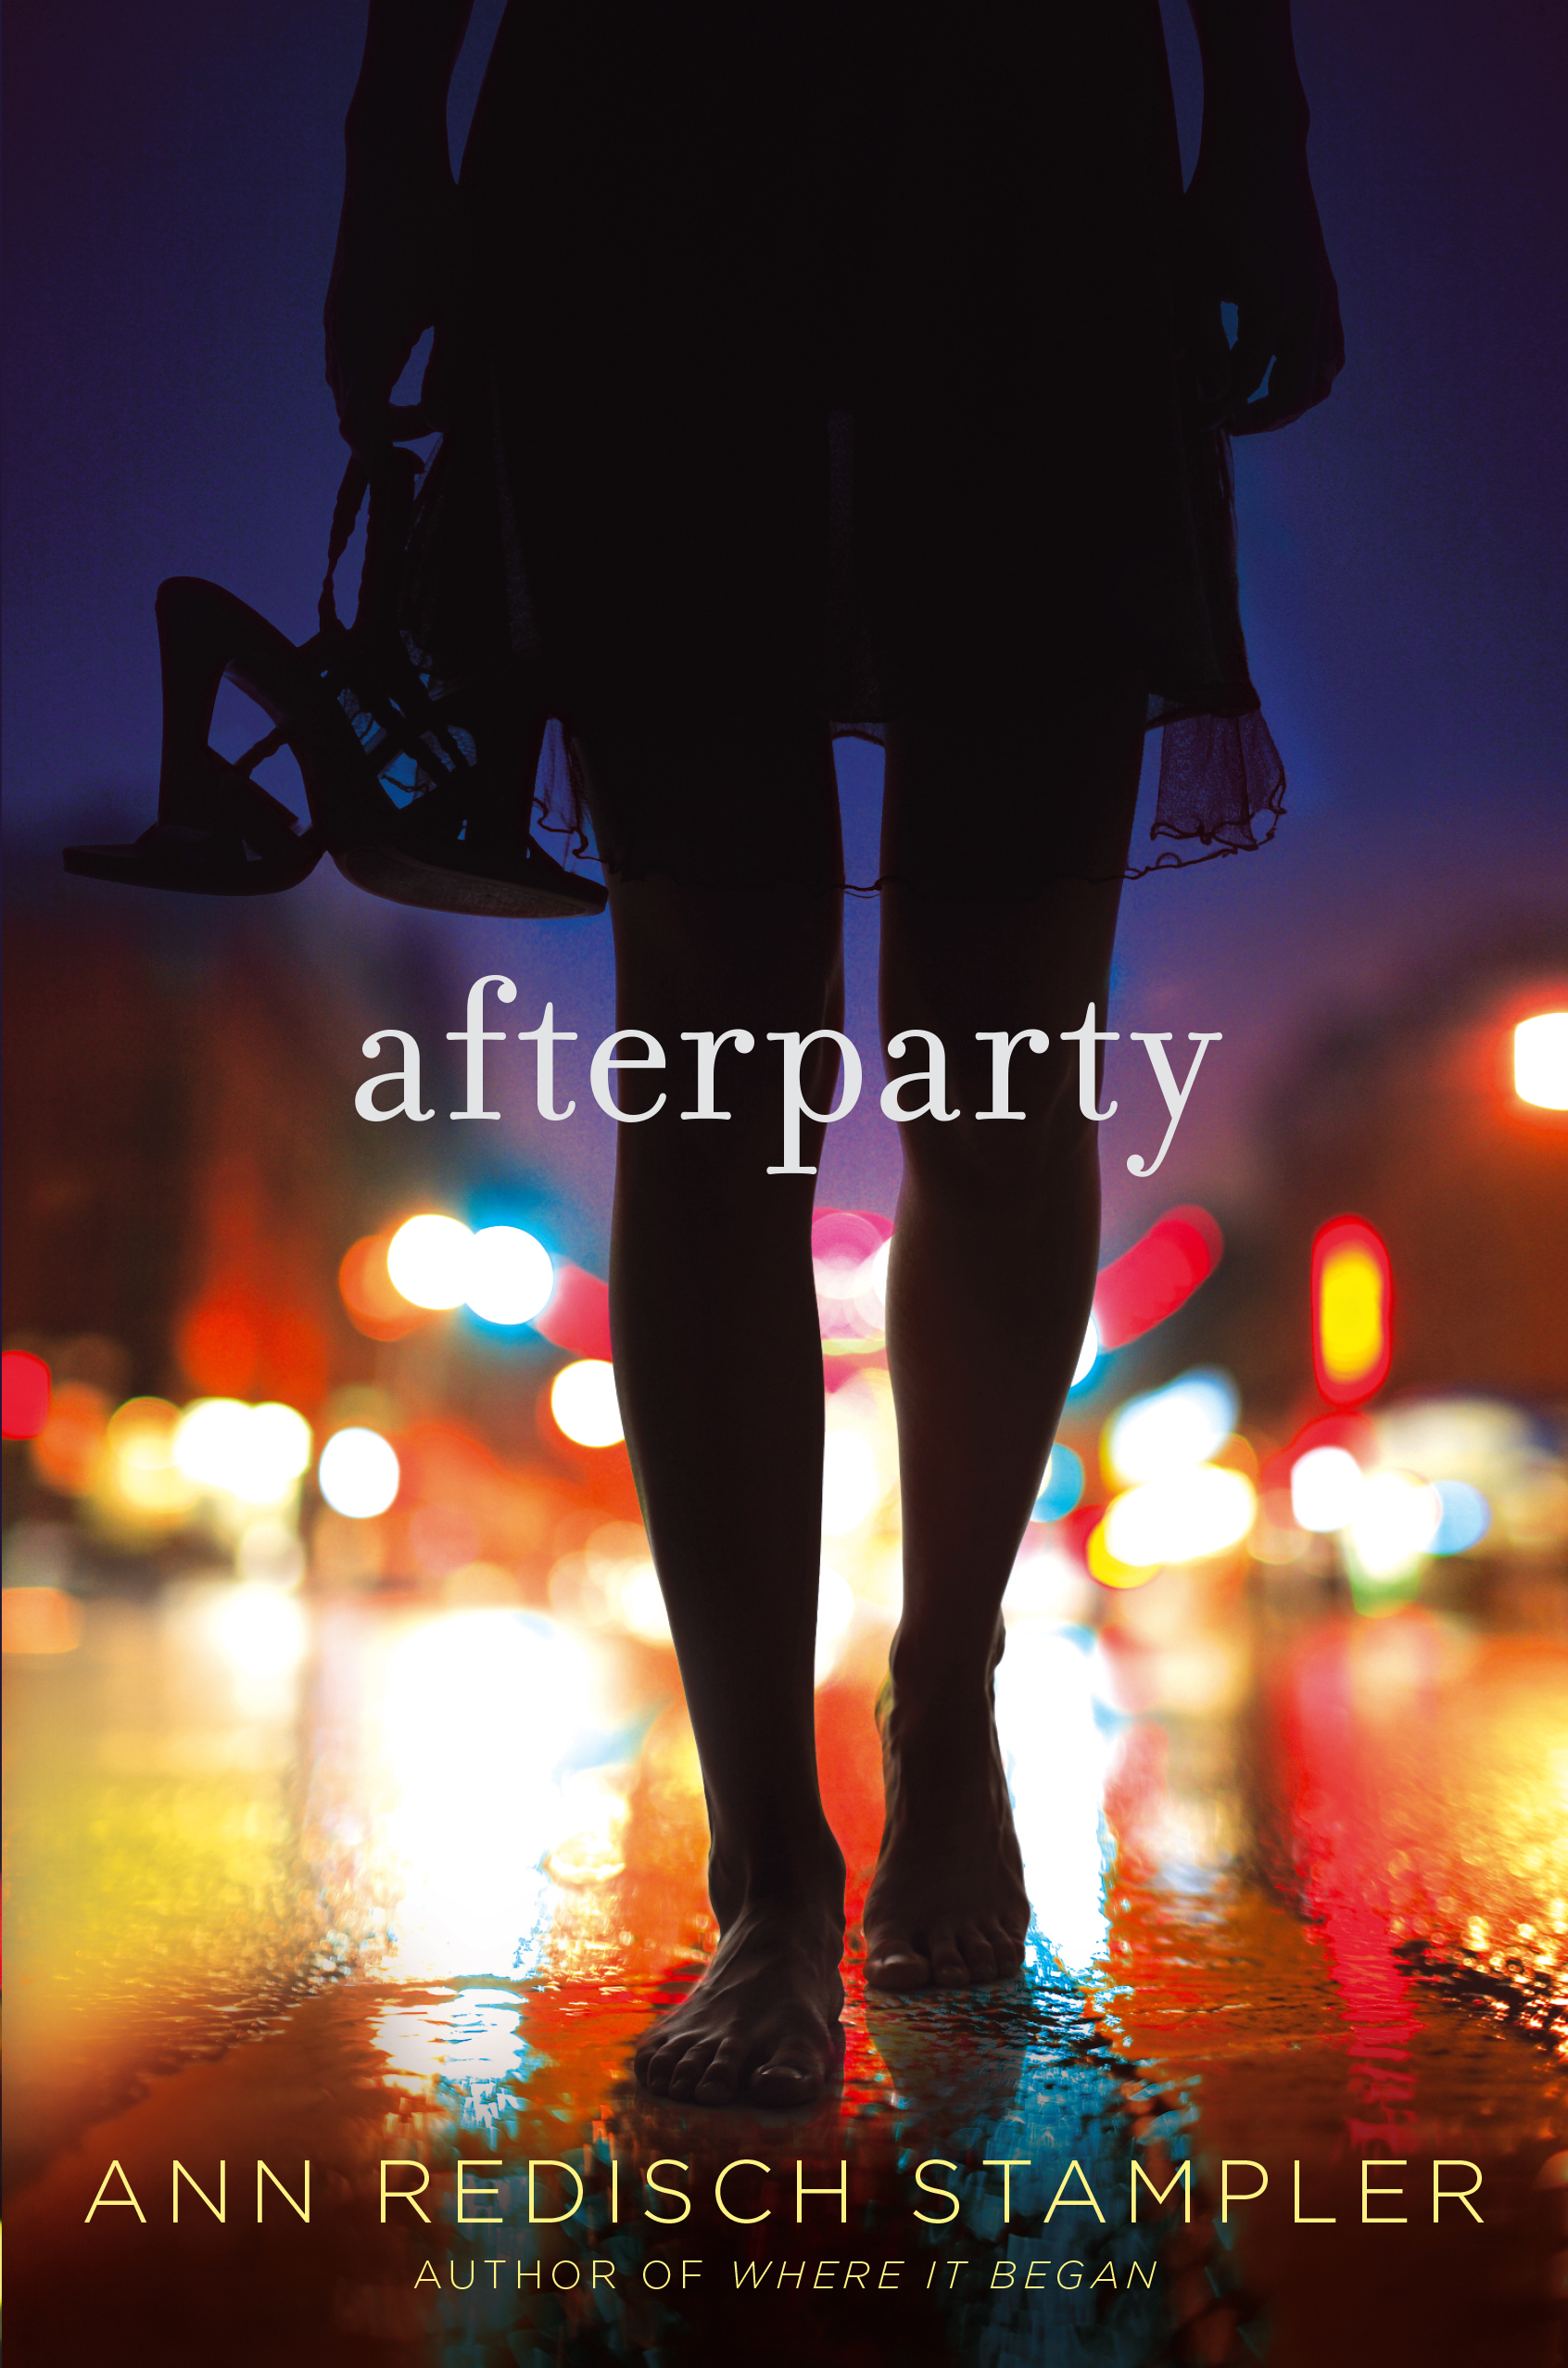 Afterparty 9781442423244 hr